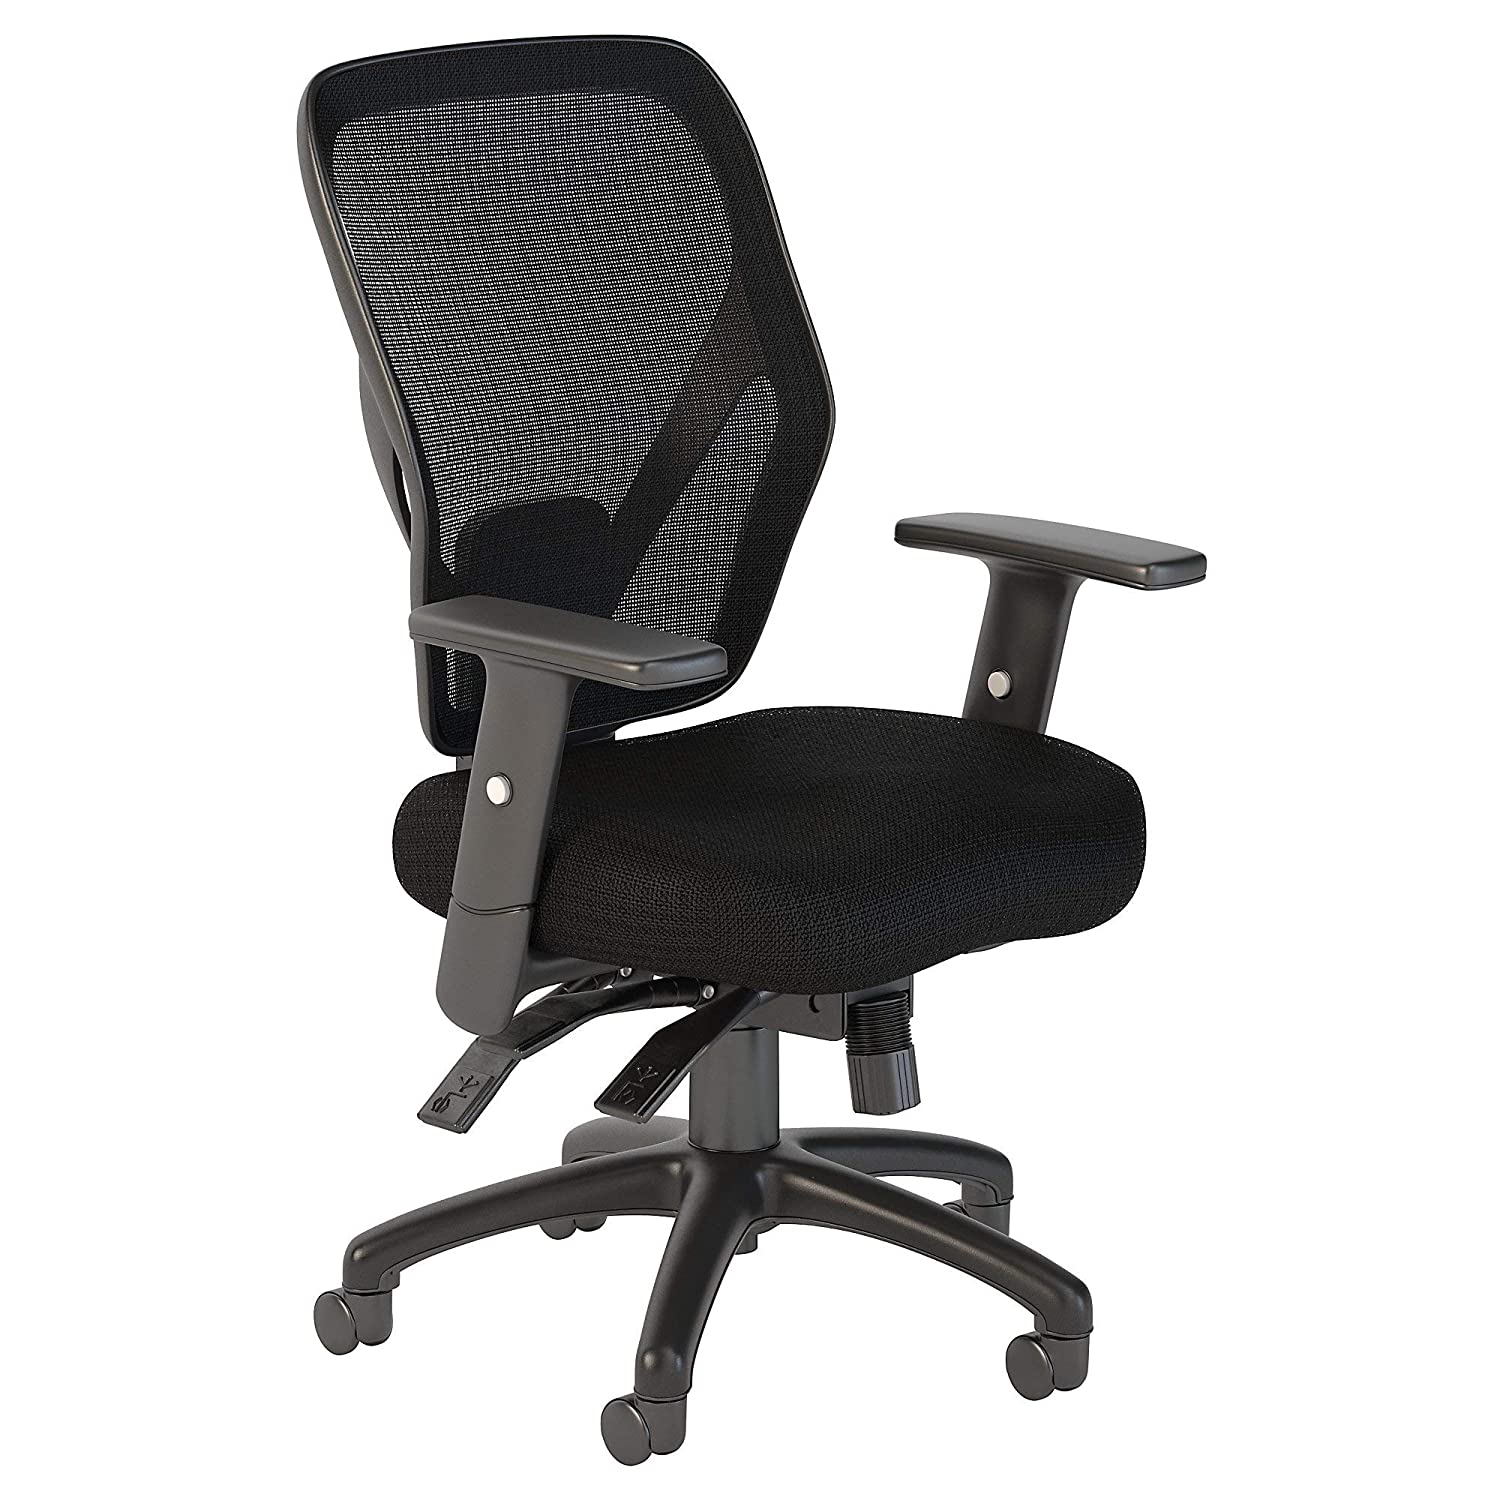 Bush Business Furniture Corporate Mid Back Multifunction Mesh Office Chair in Black